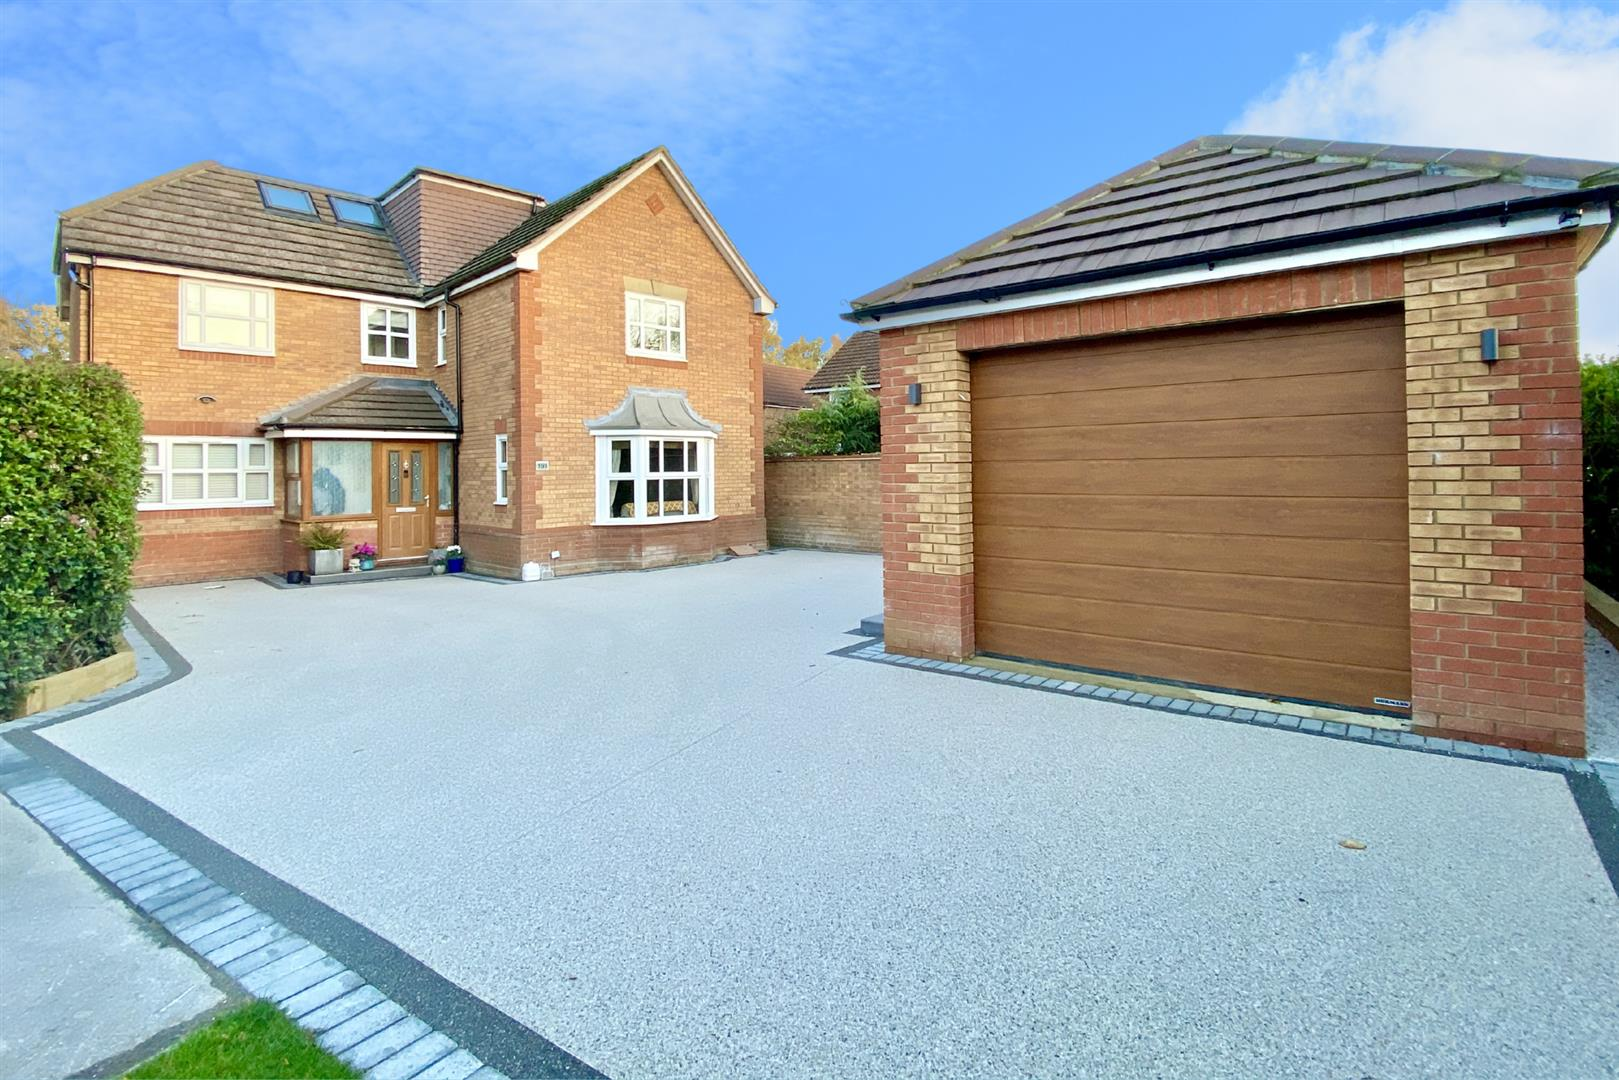 5 bed detached for sale in Woodley, RG5